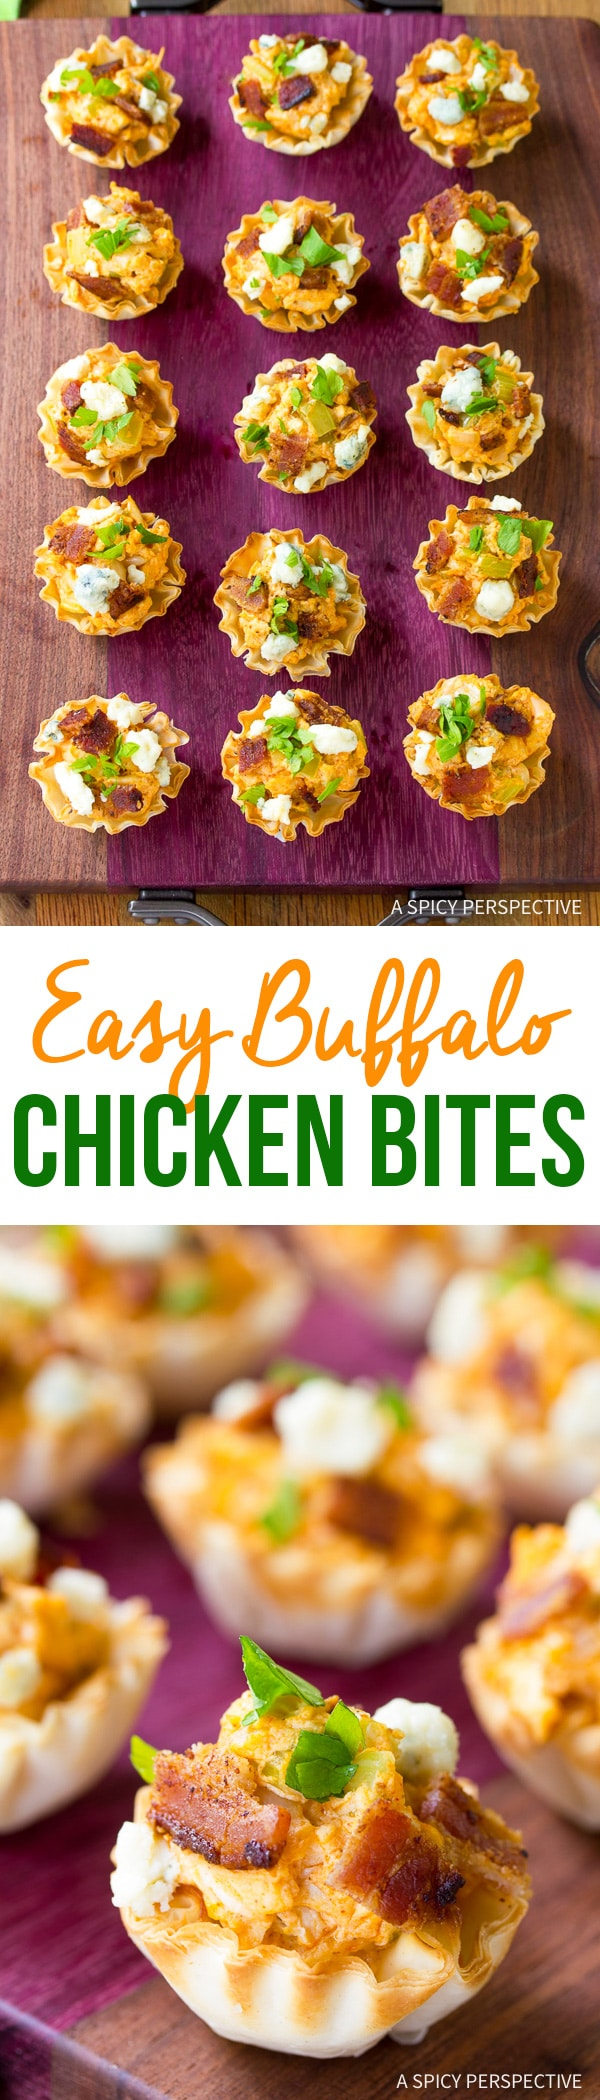 Looking for quick and tasty party snacks? Look no further. These itty bitty Easy Buffalo Chicken Bites are just the thing to serve at your game-day party!